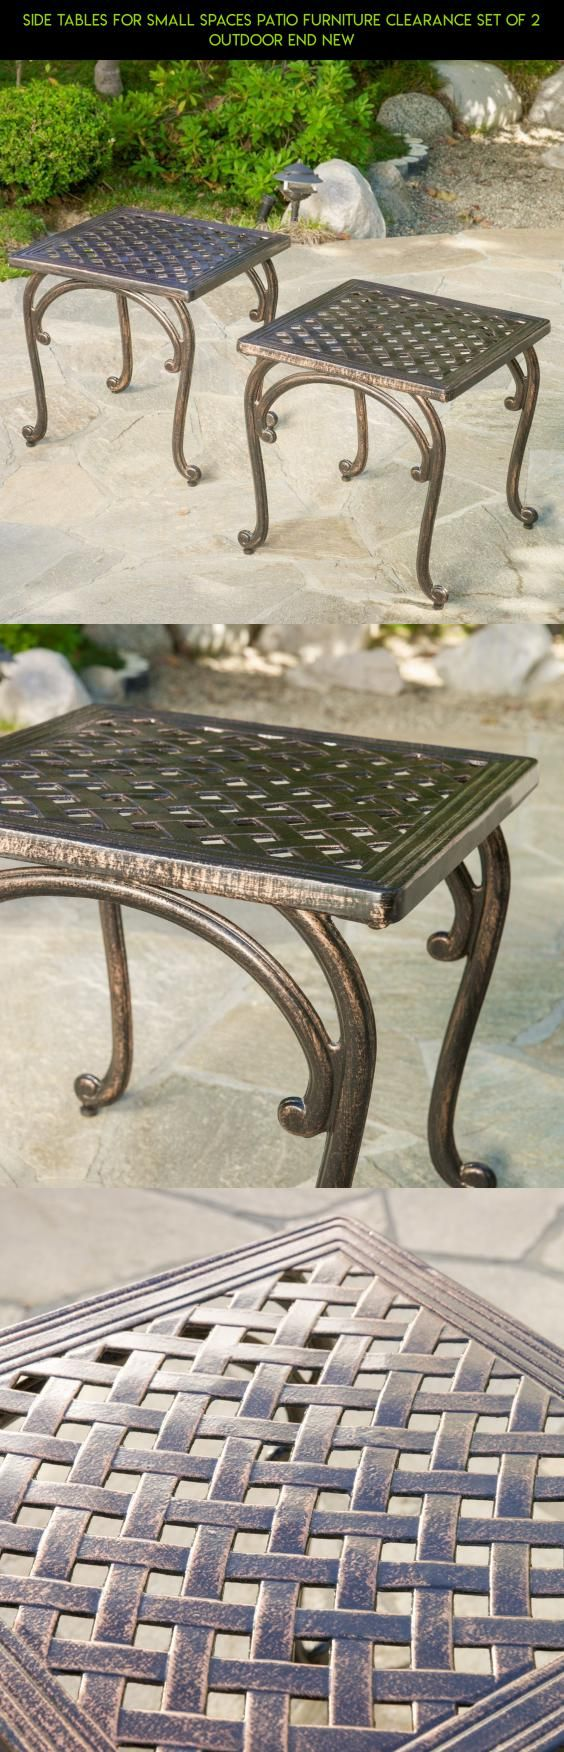 Best 25 Patio Furniture Clearance Ideas That You Will